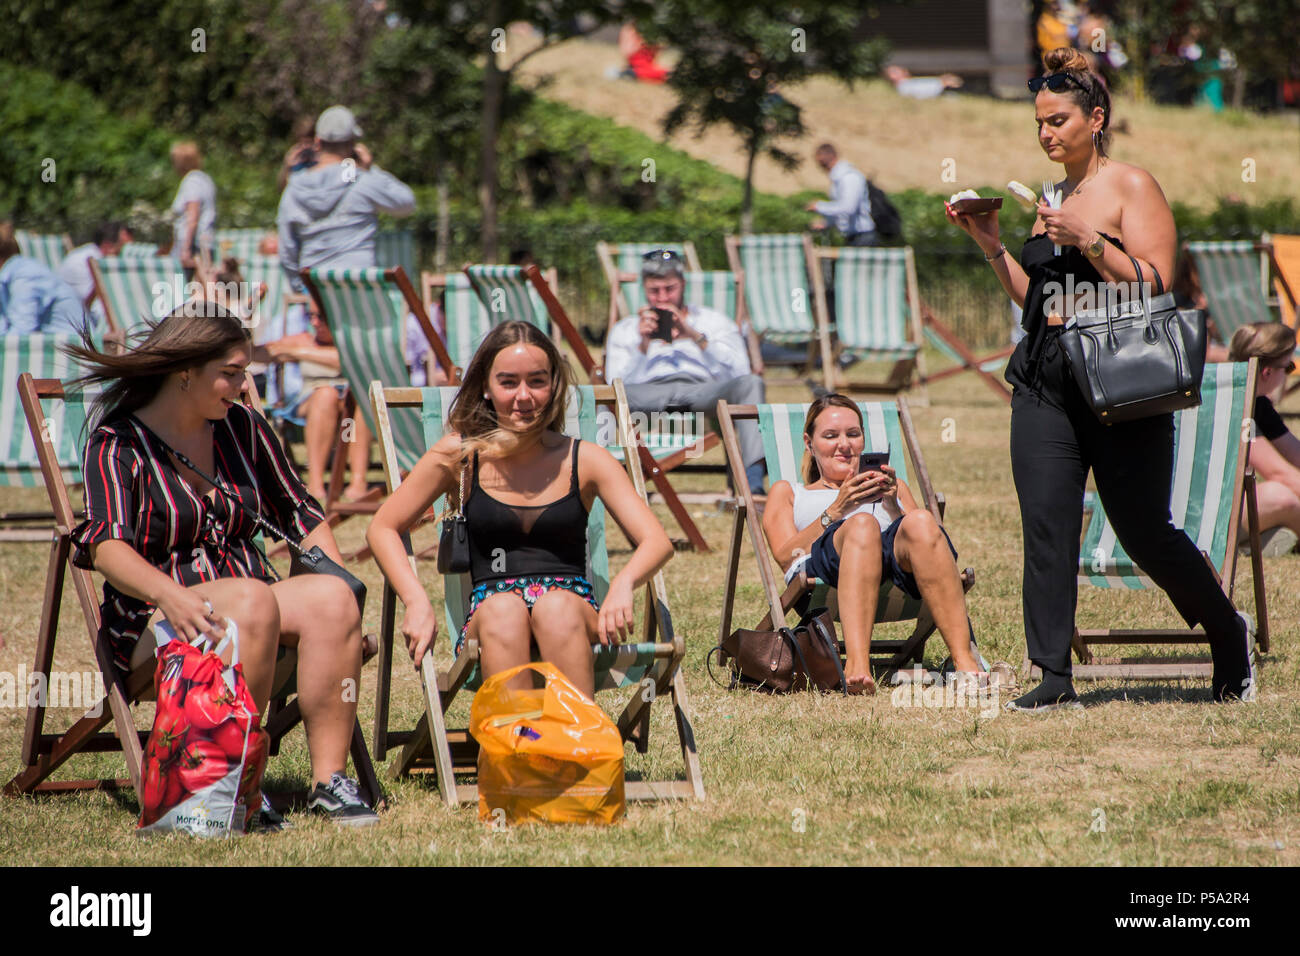 Green Park, London. 26th Jun, 2018. UK Weather: People enjoy their lunch break in the hot and sunny conditions in Green Park.. Credit: Guy Bell/Alamy Live News Stock Photo